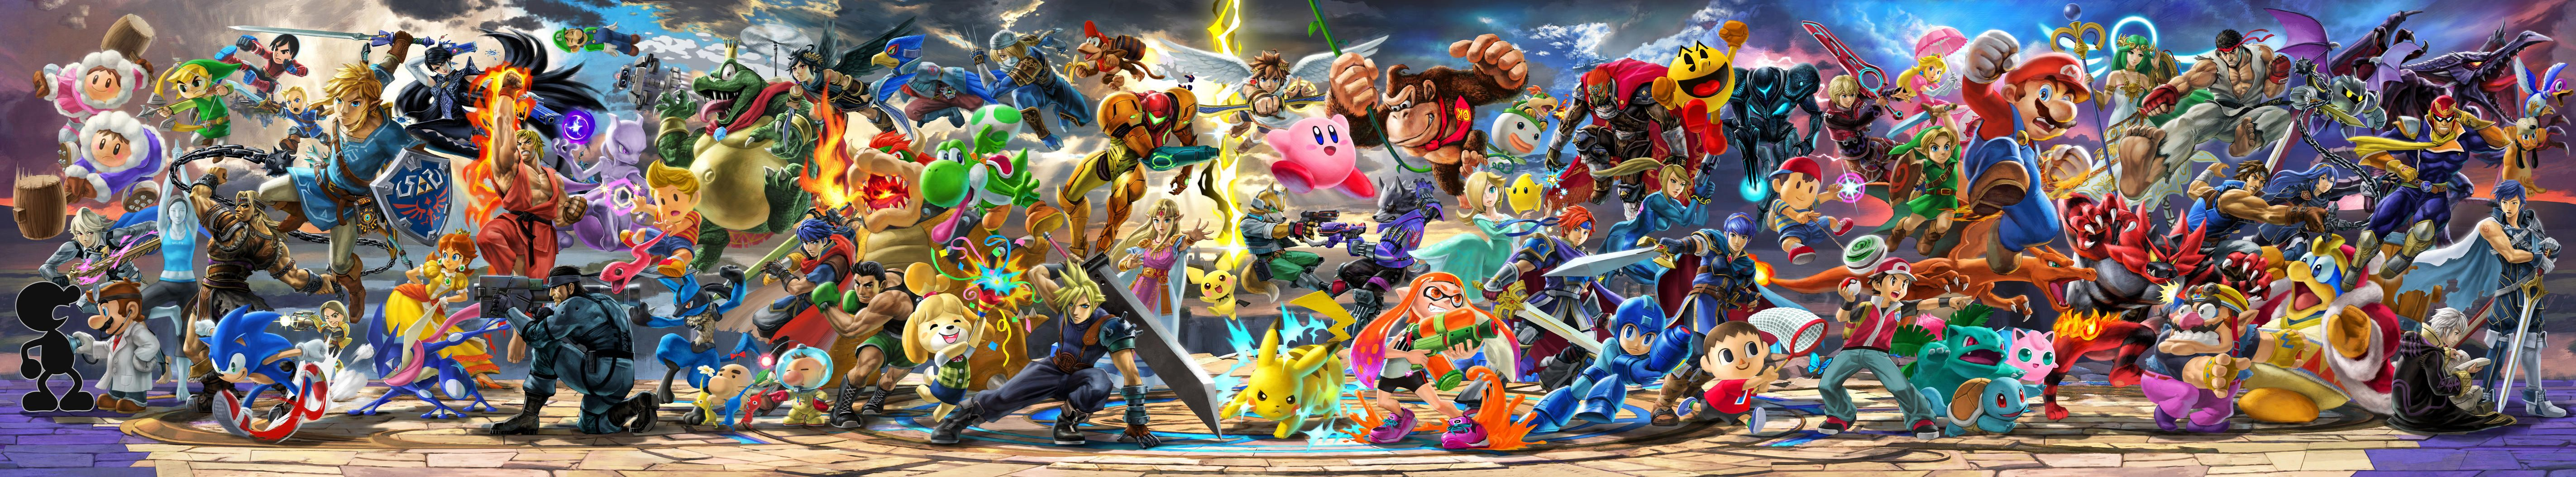 Super Smash Bros  Ultimate Review: Everything We've Ever Wanted